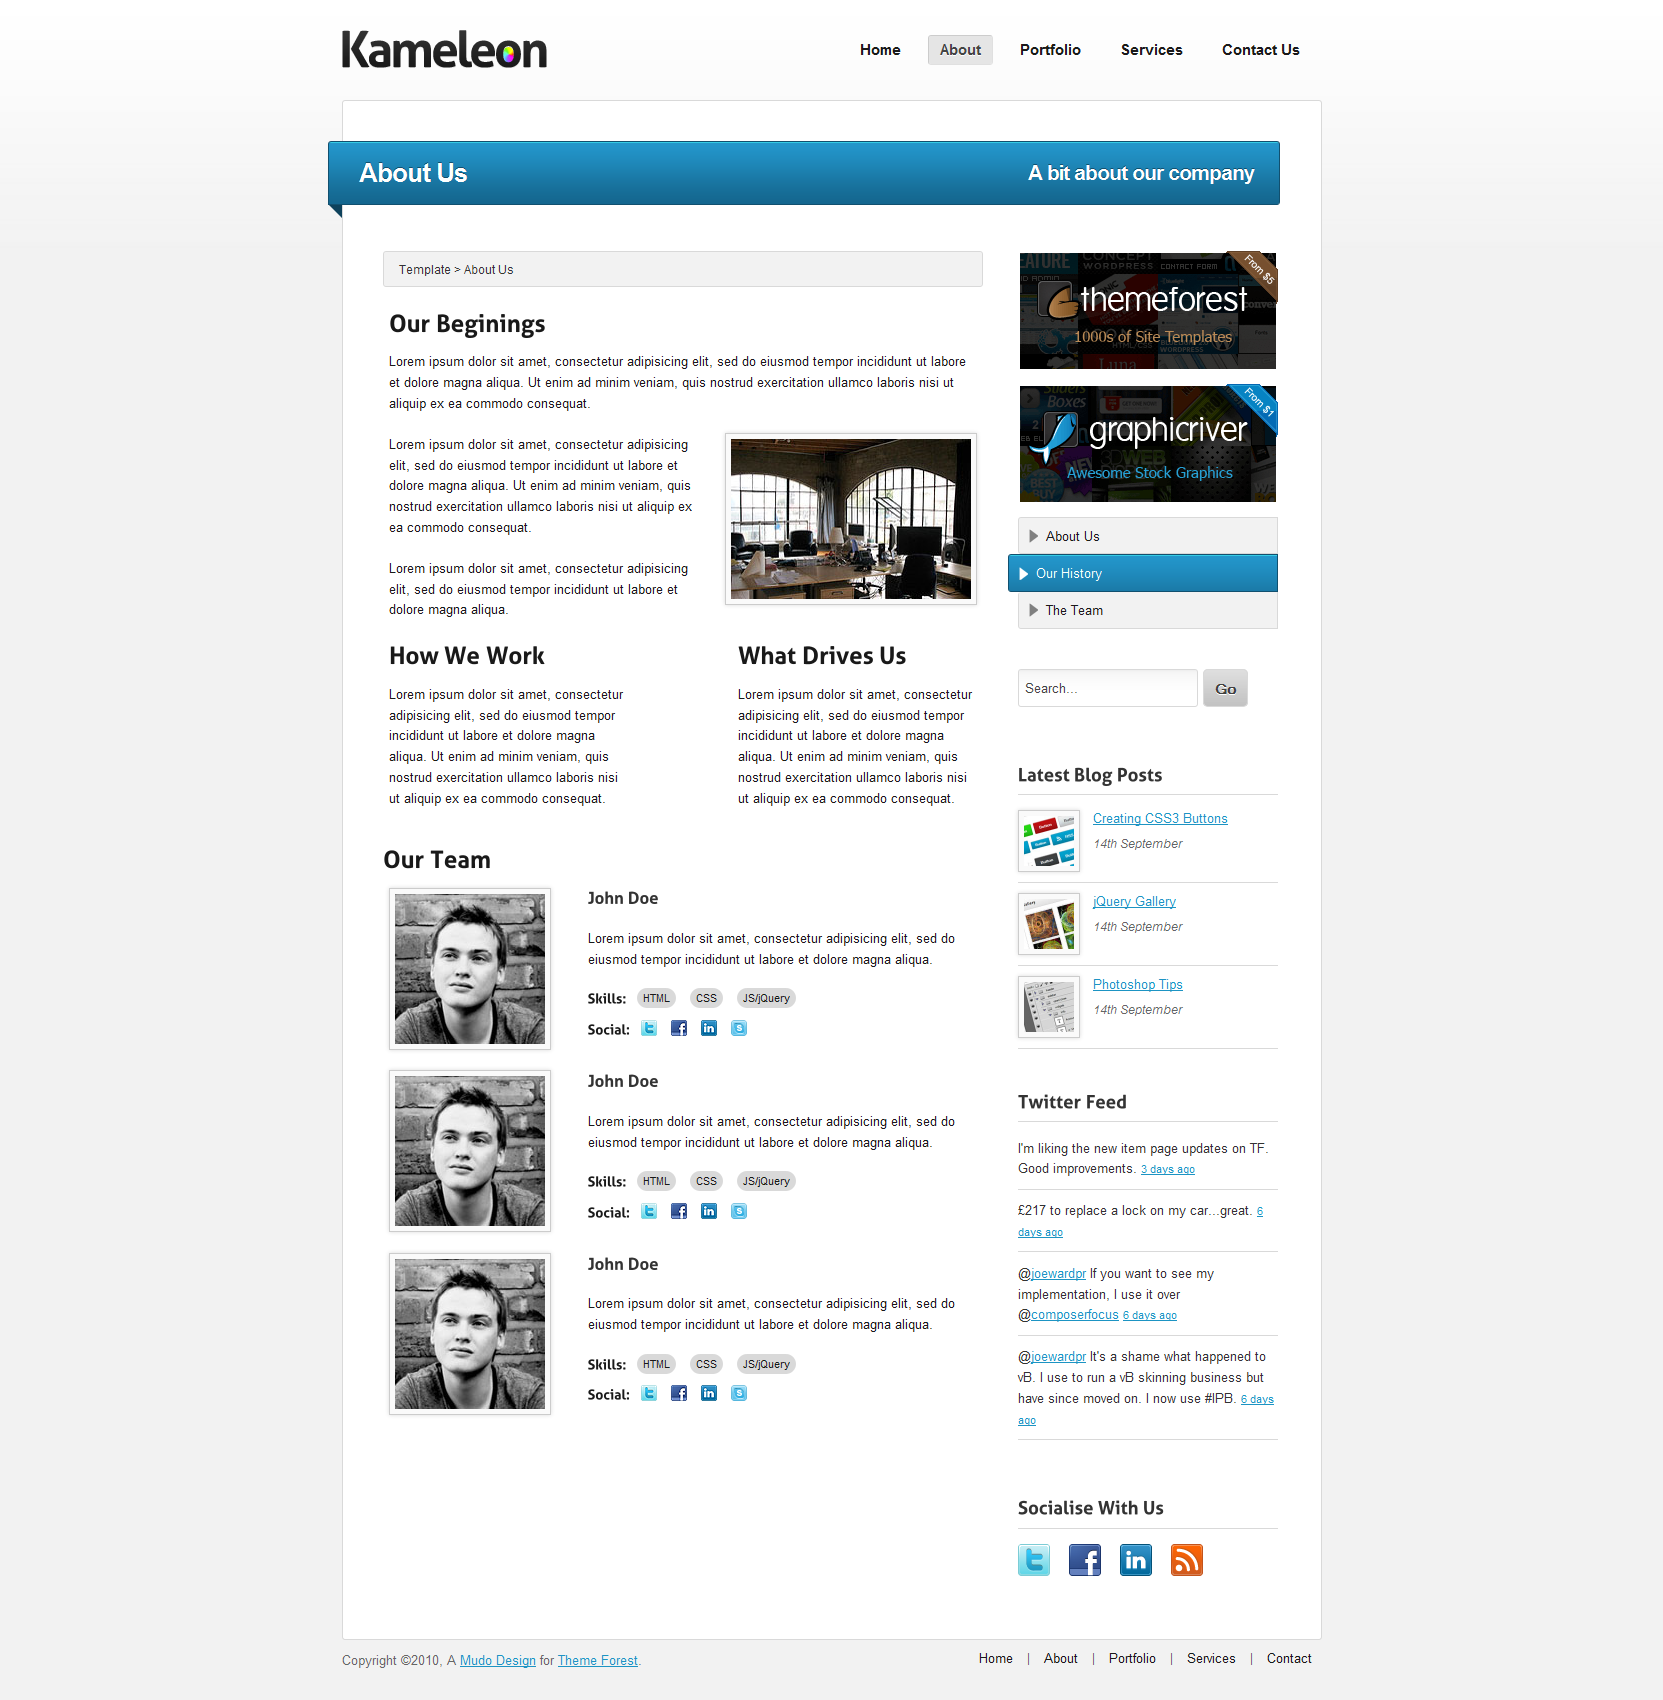 Kameleon - Premium Business & Product Template